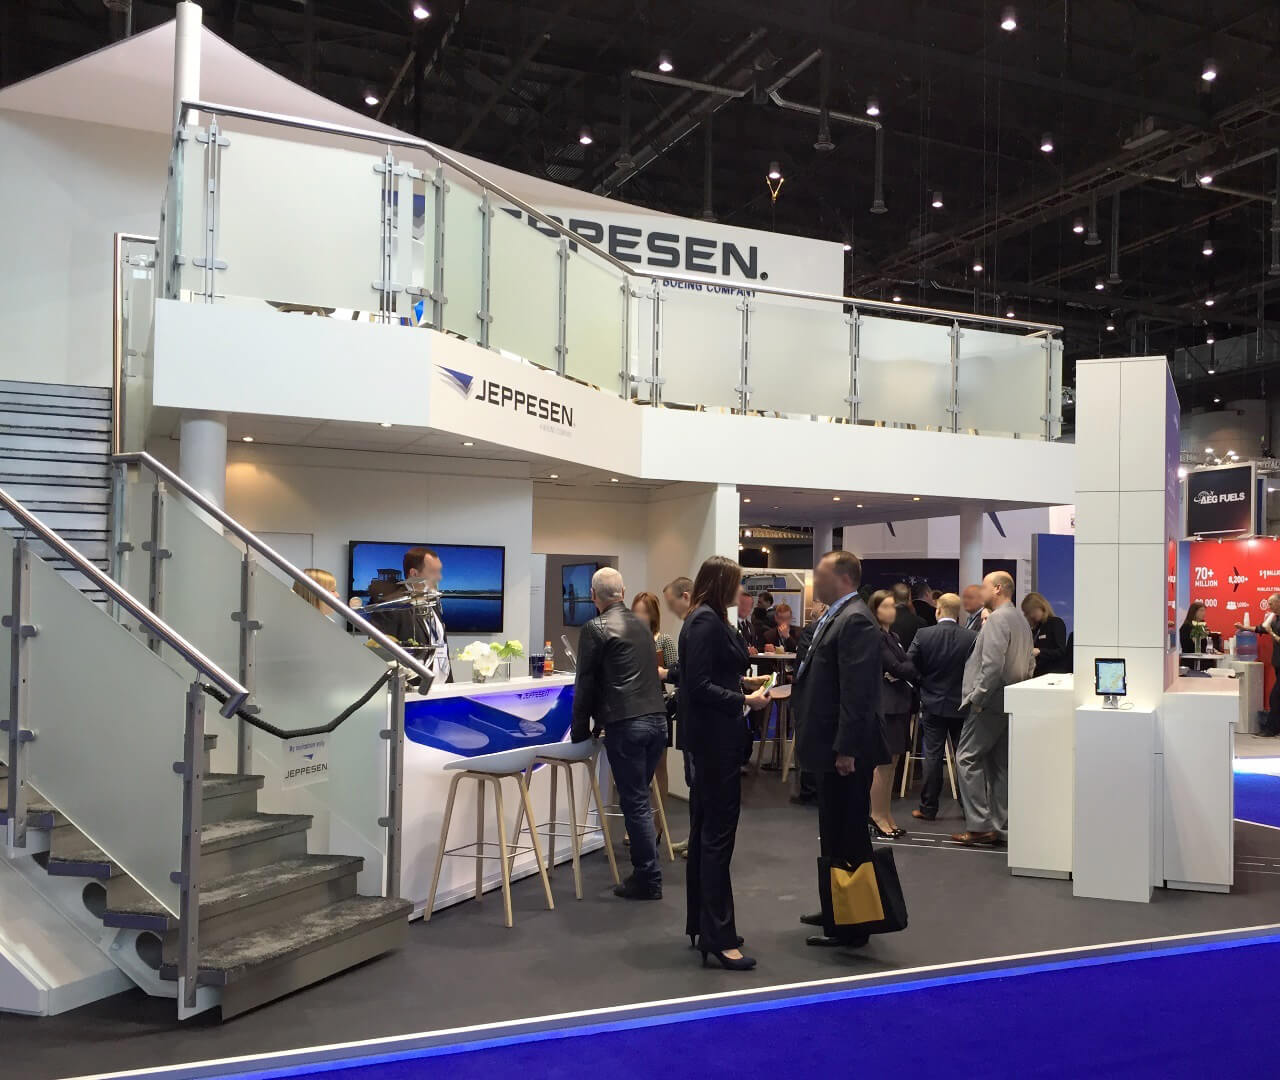 Messestand für Jeppesen in Friedrichshafen - Internationale Messen - designed by Service Factory